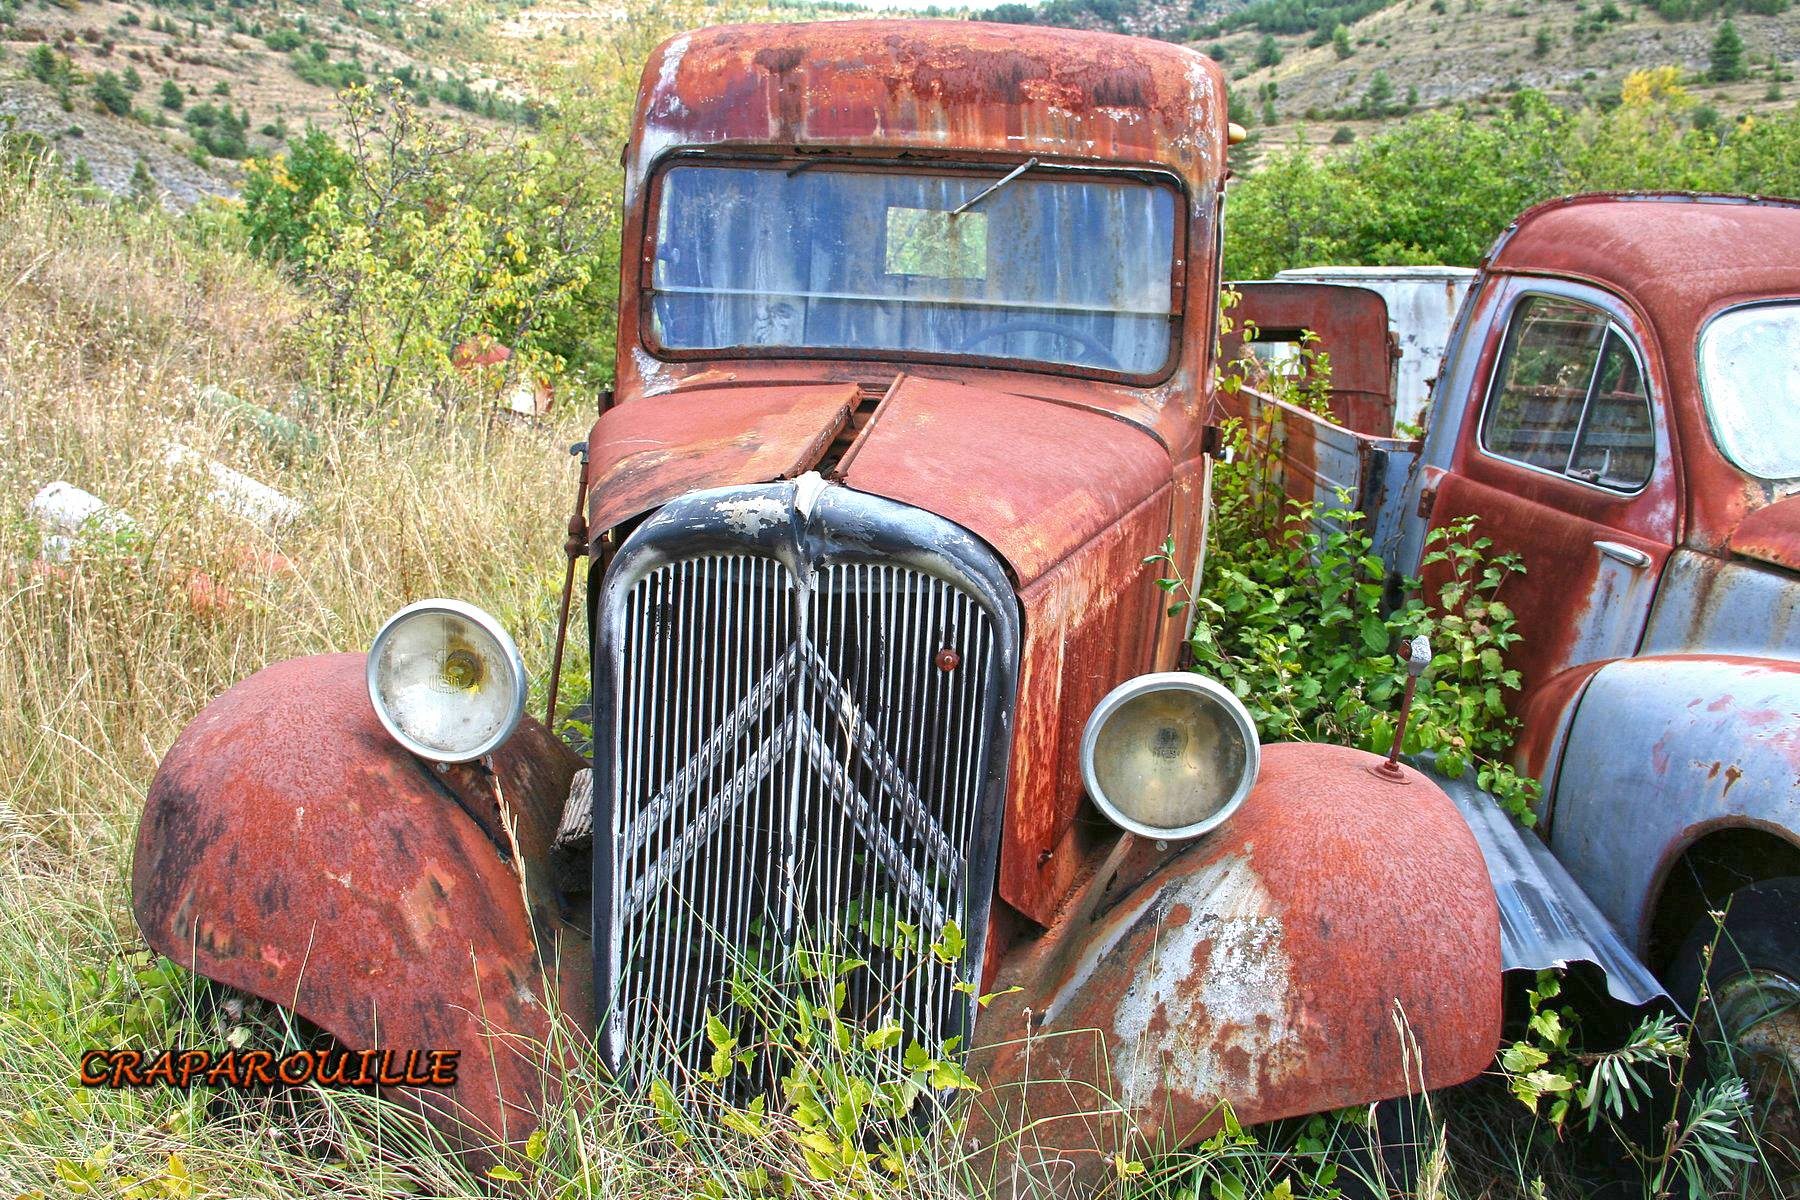 Photography-Diamonds-in-Rust-Craparouille-97